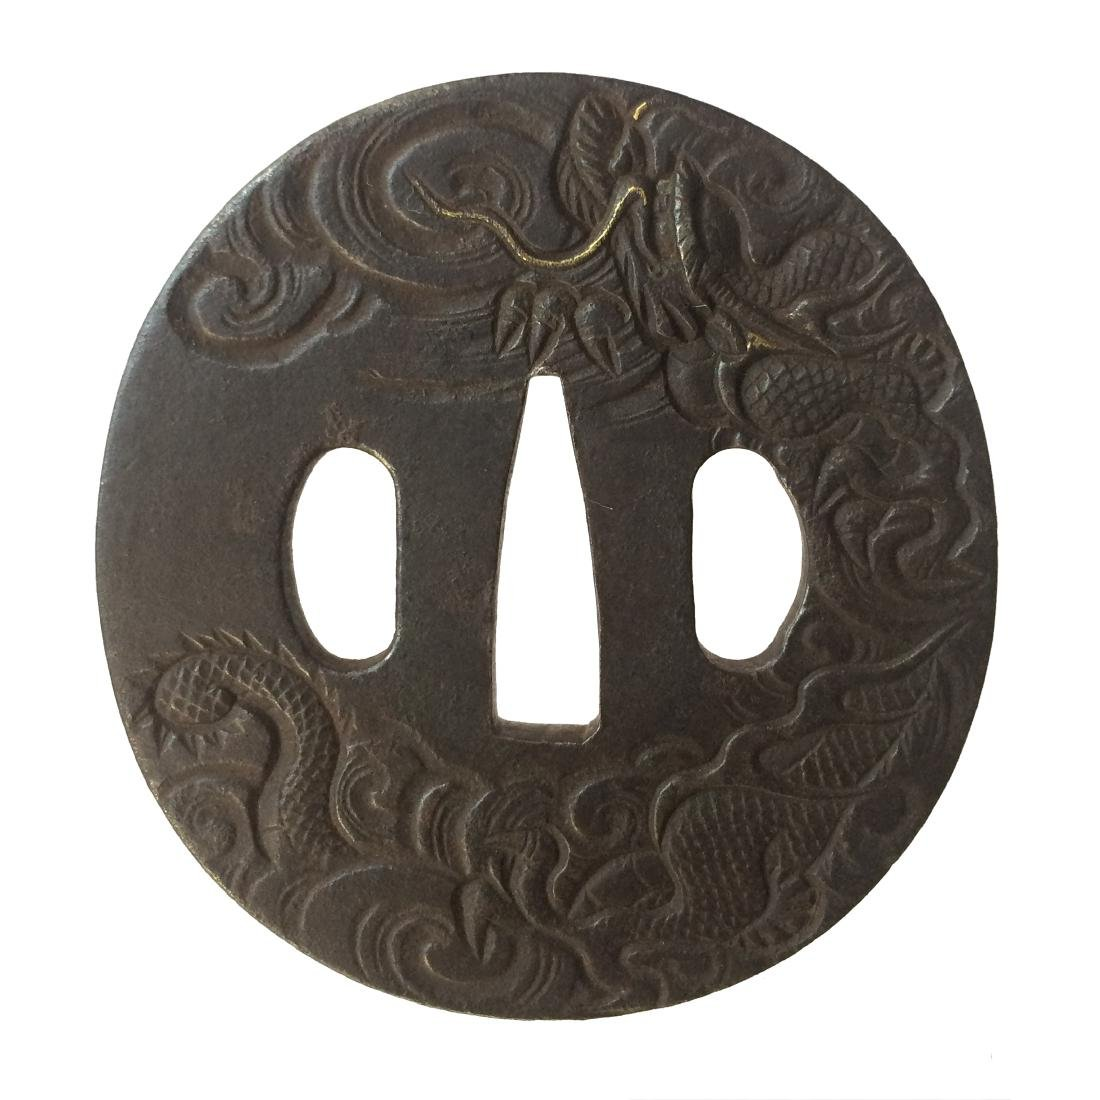 Iron tsuba with a dragon among clouds